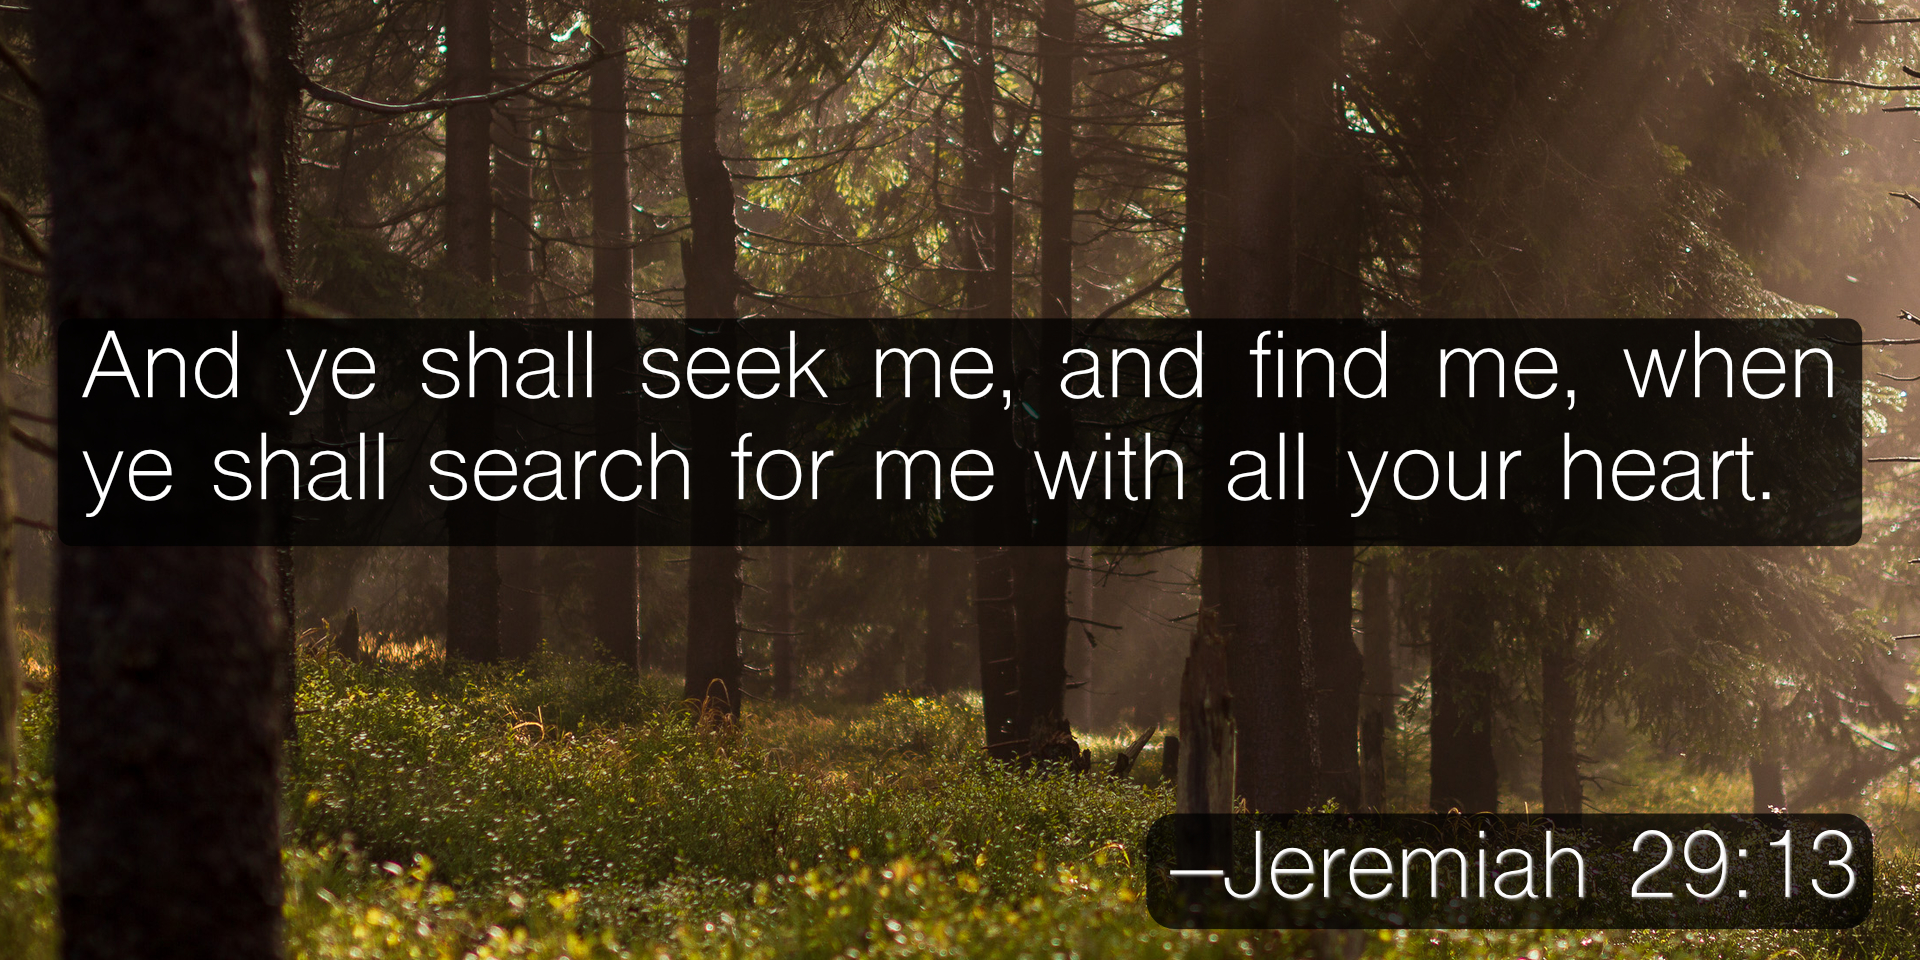 And ye shall seek me, and find me, when ye shall search for me with all your heart. –Jeremiah 29:13